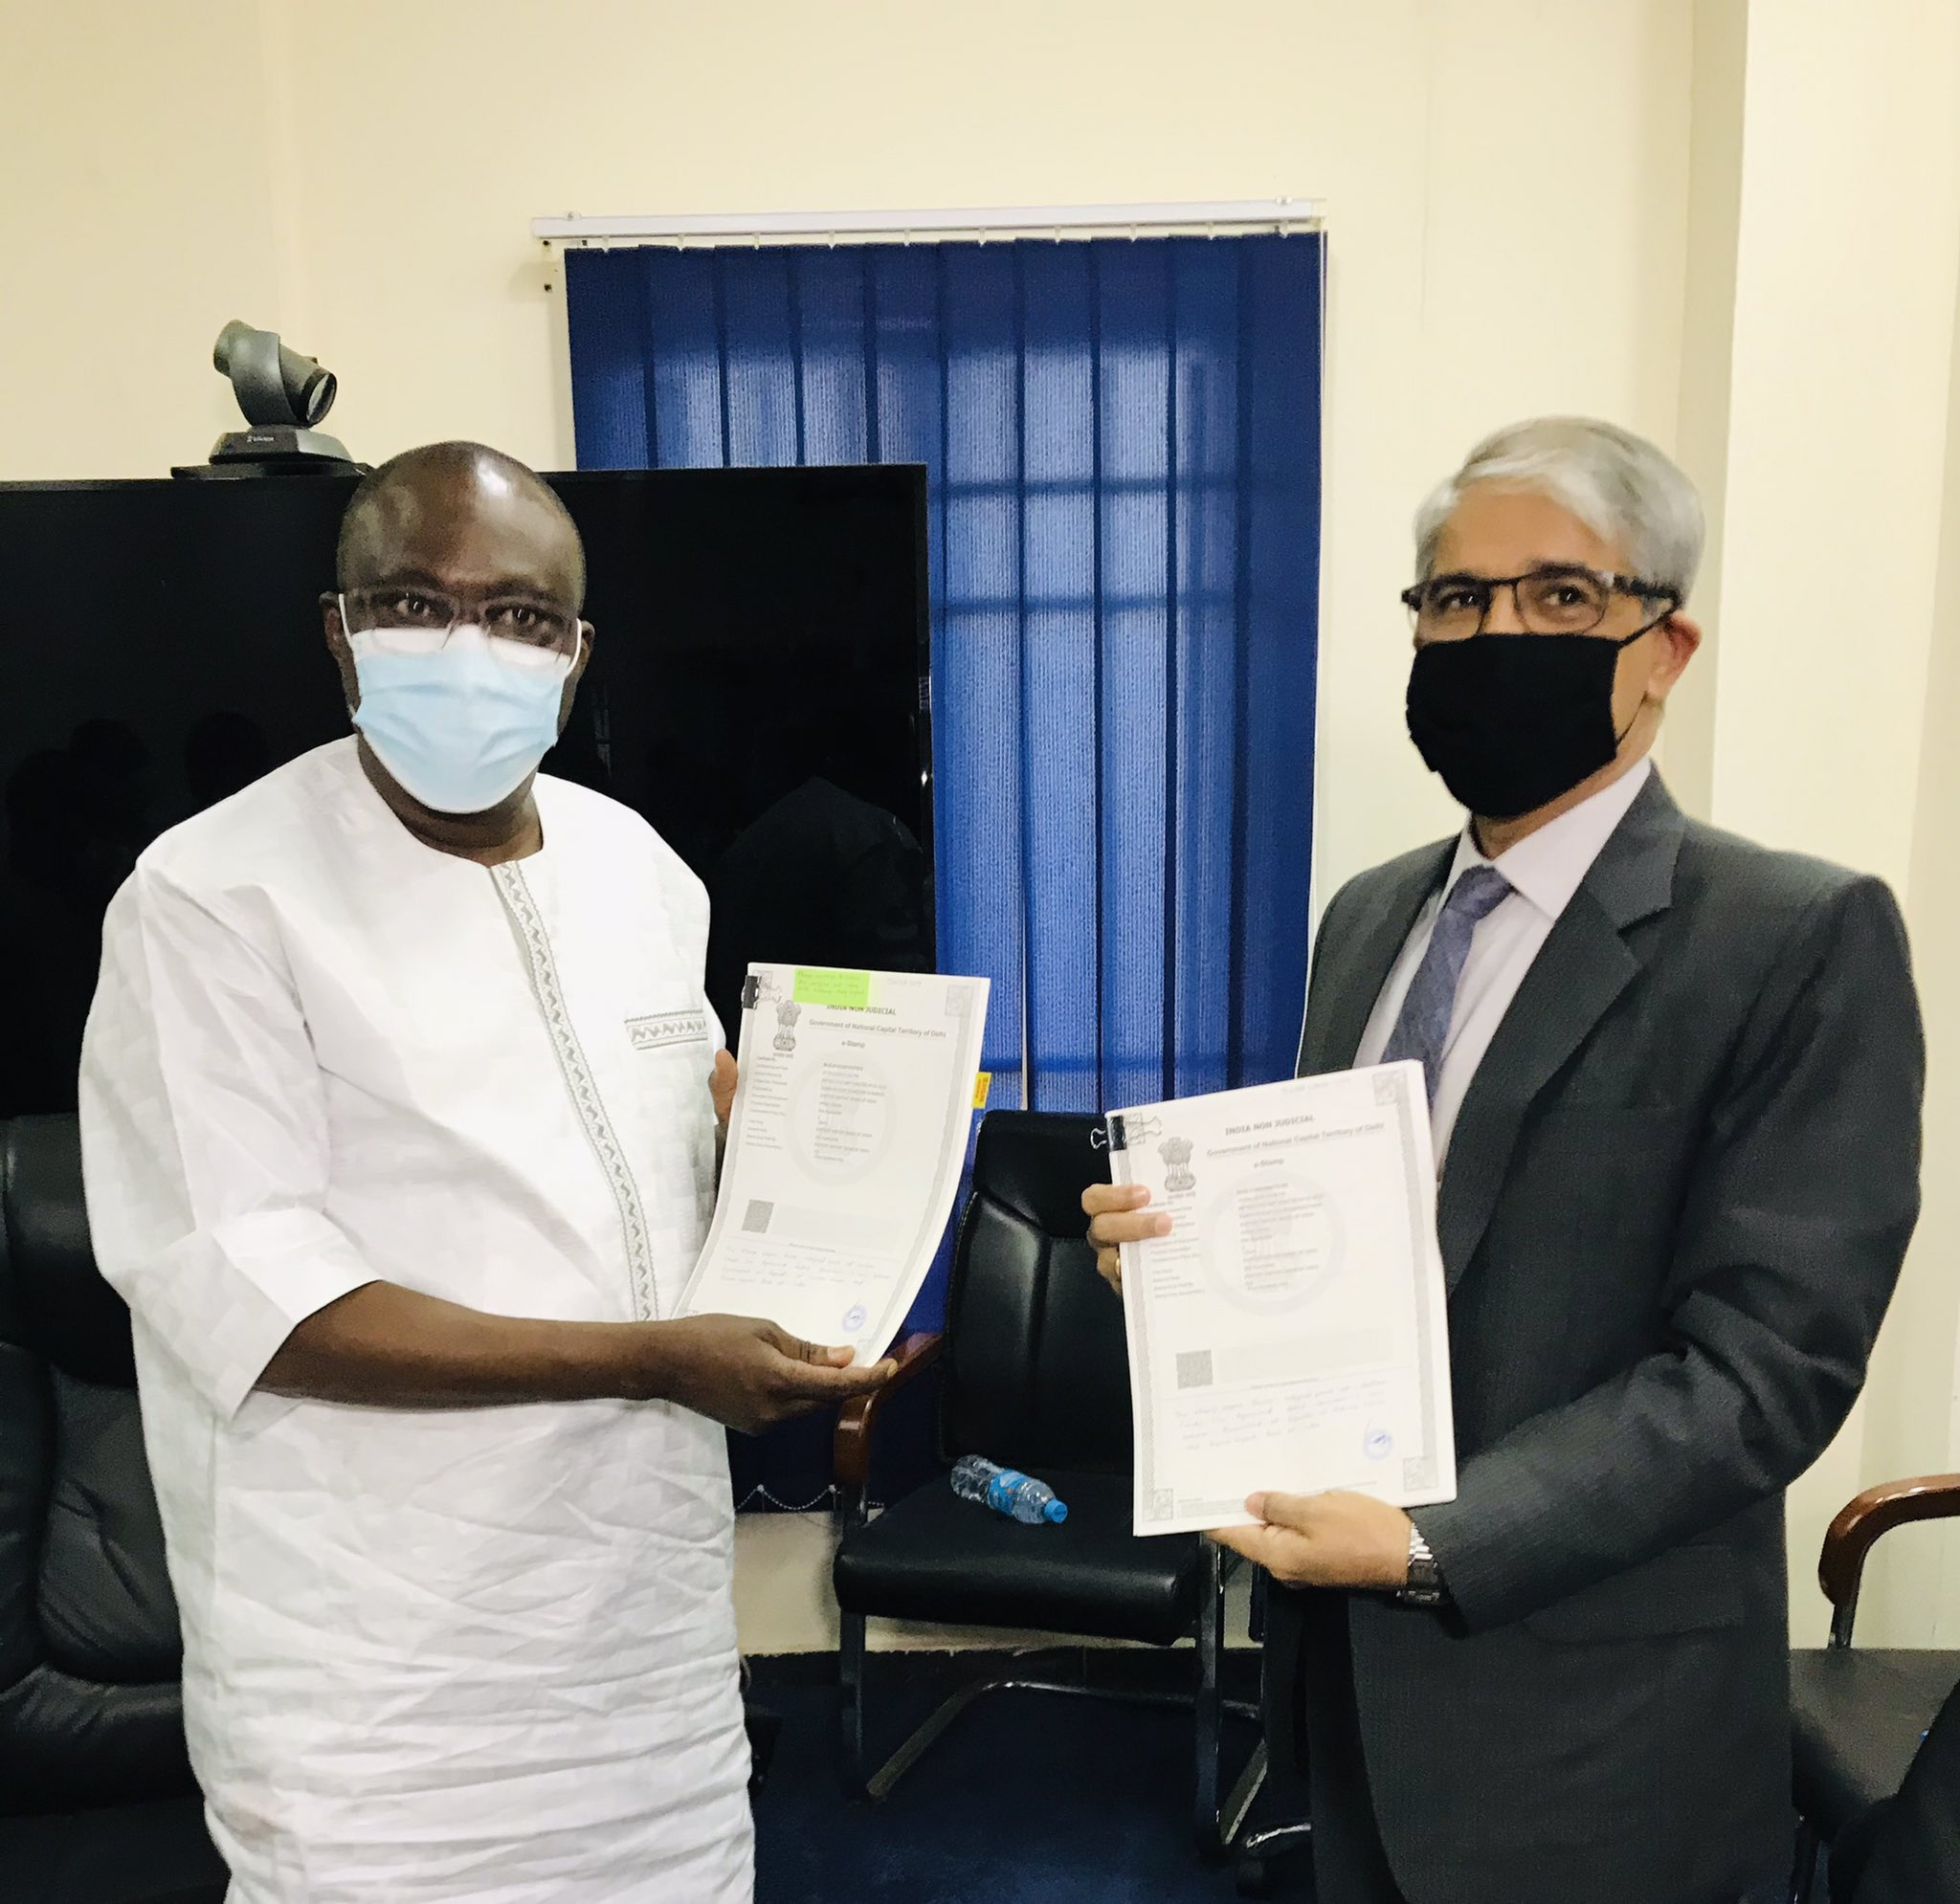 High Commissioner Rakesh Arora exchanged Agreement with Sierra Leone Ministers of Finance & Water Resources on 5 Feb 2021 for loan/Line of Credit of $15 million by India for expansion of potable water facilities in Sierra Leone